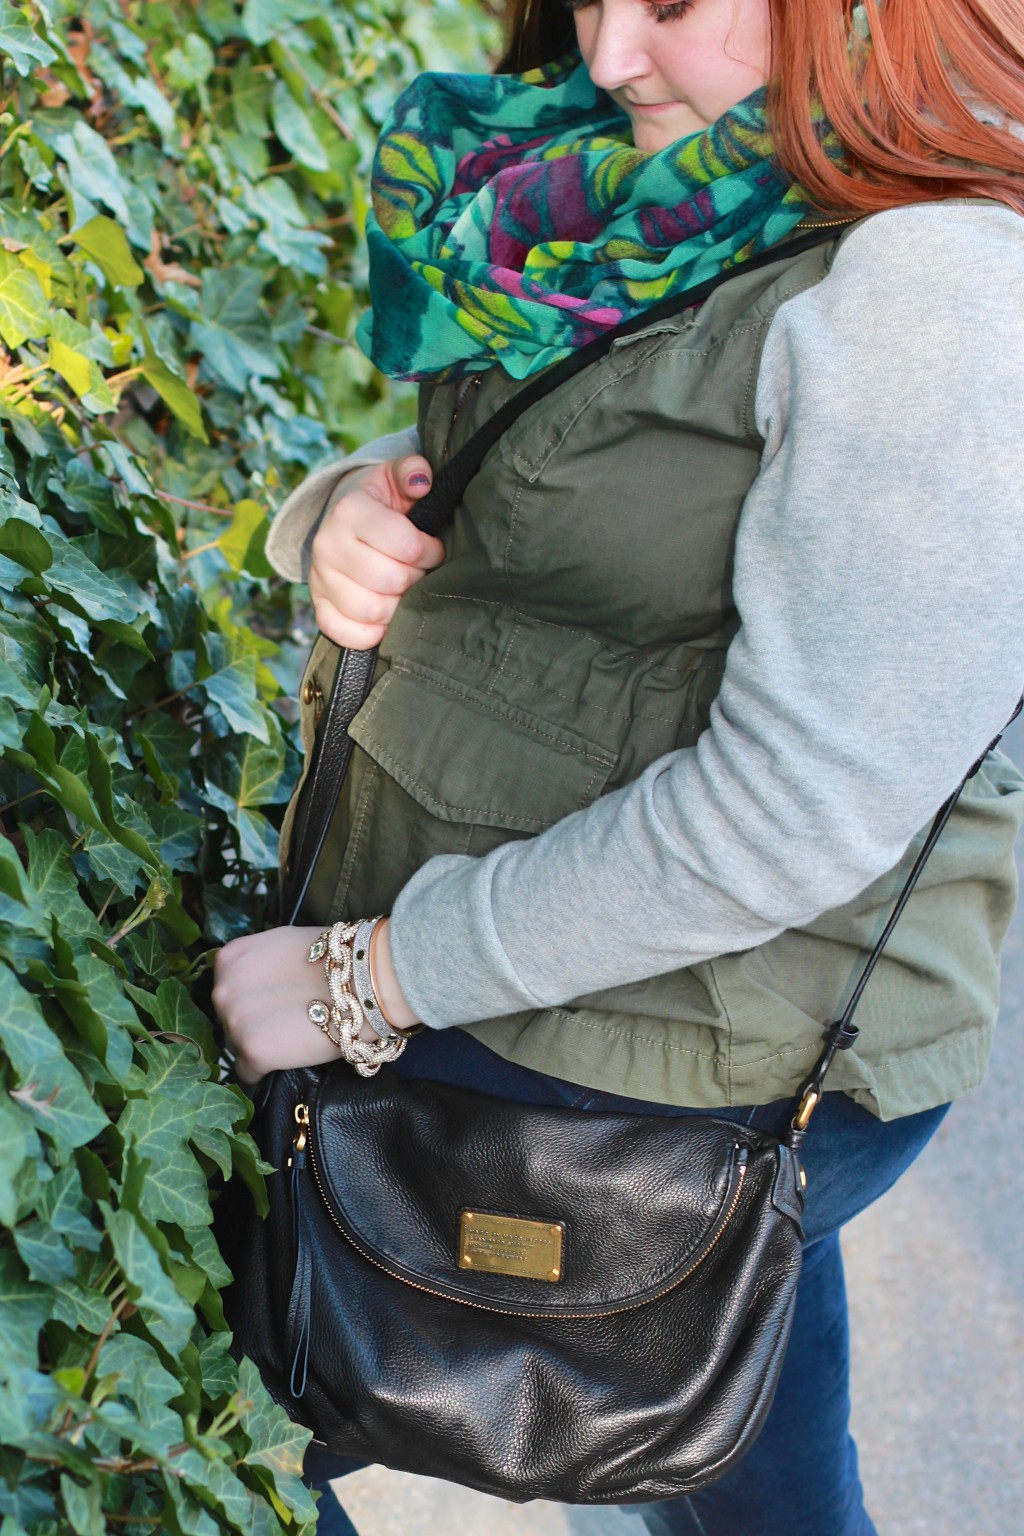 Marc Jacobs Bag & Charming Charlie Jewelry